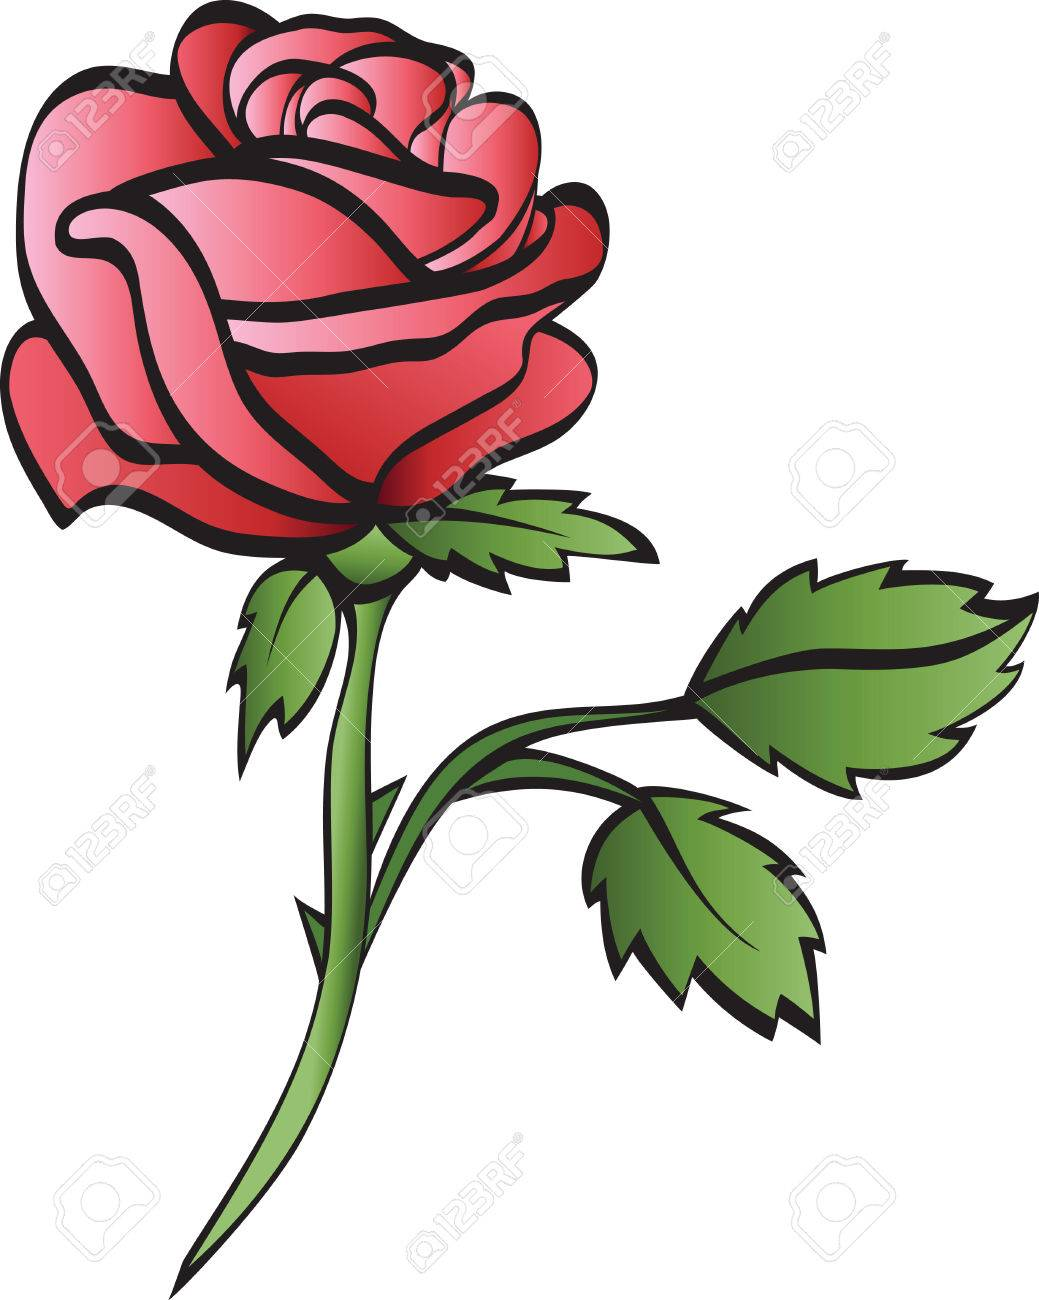 rose isolated on whte background Stock Vector - 8265034